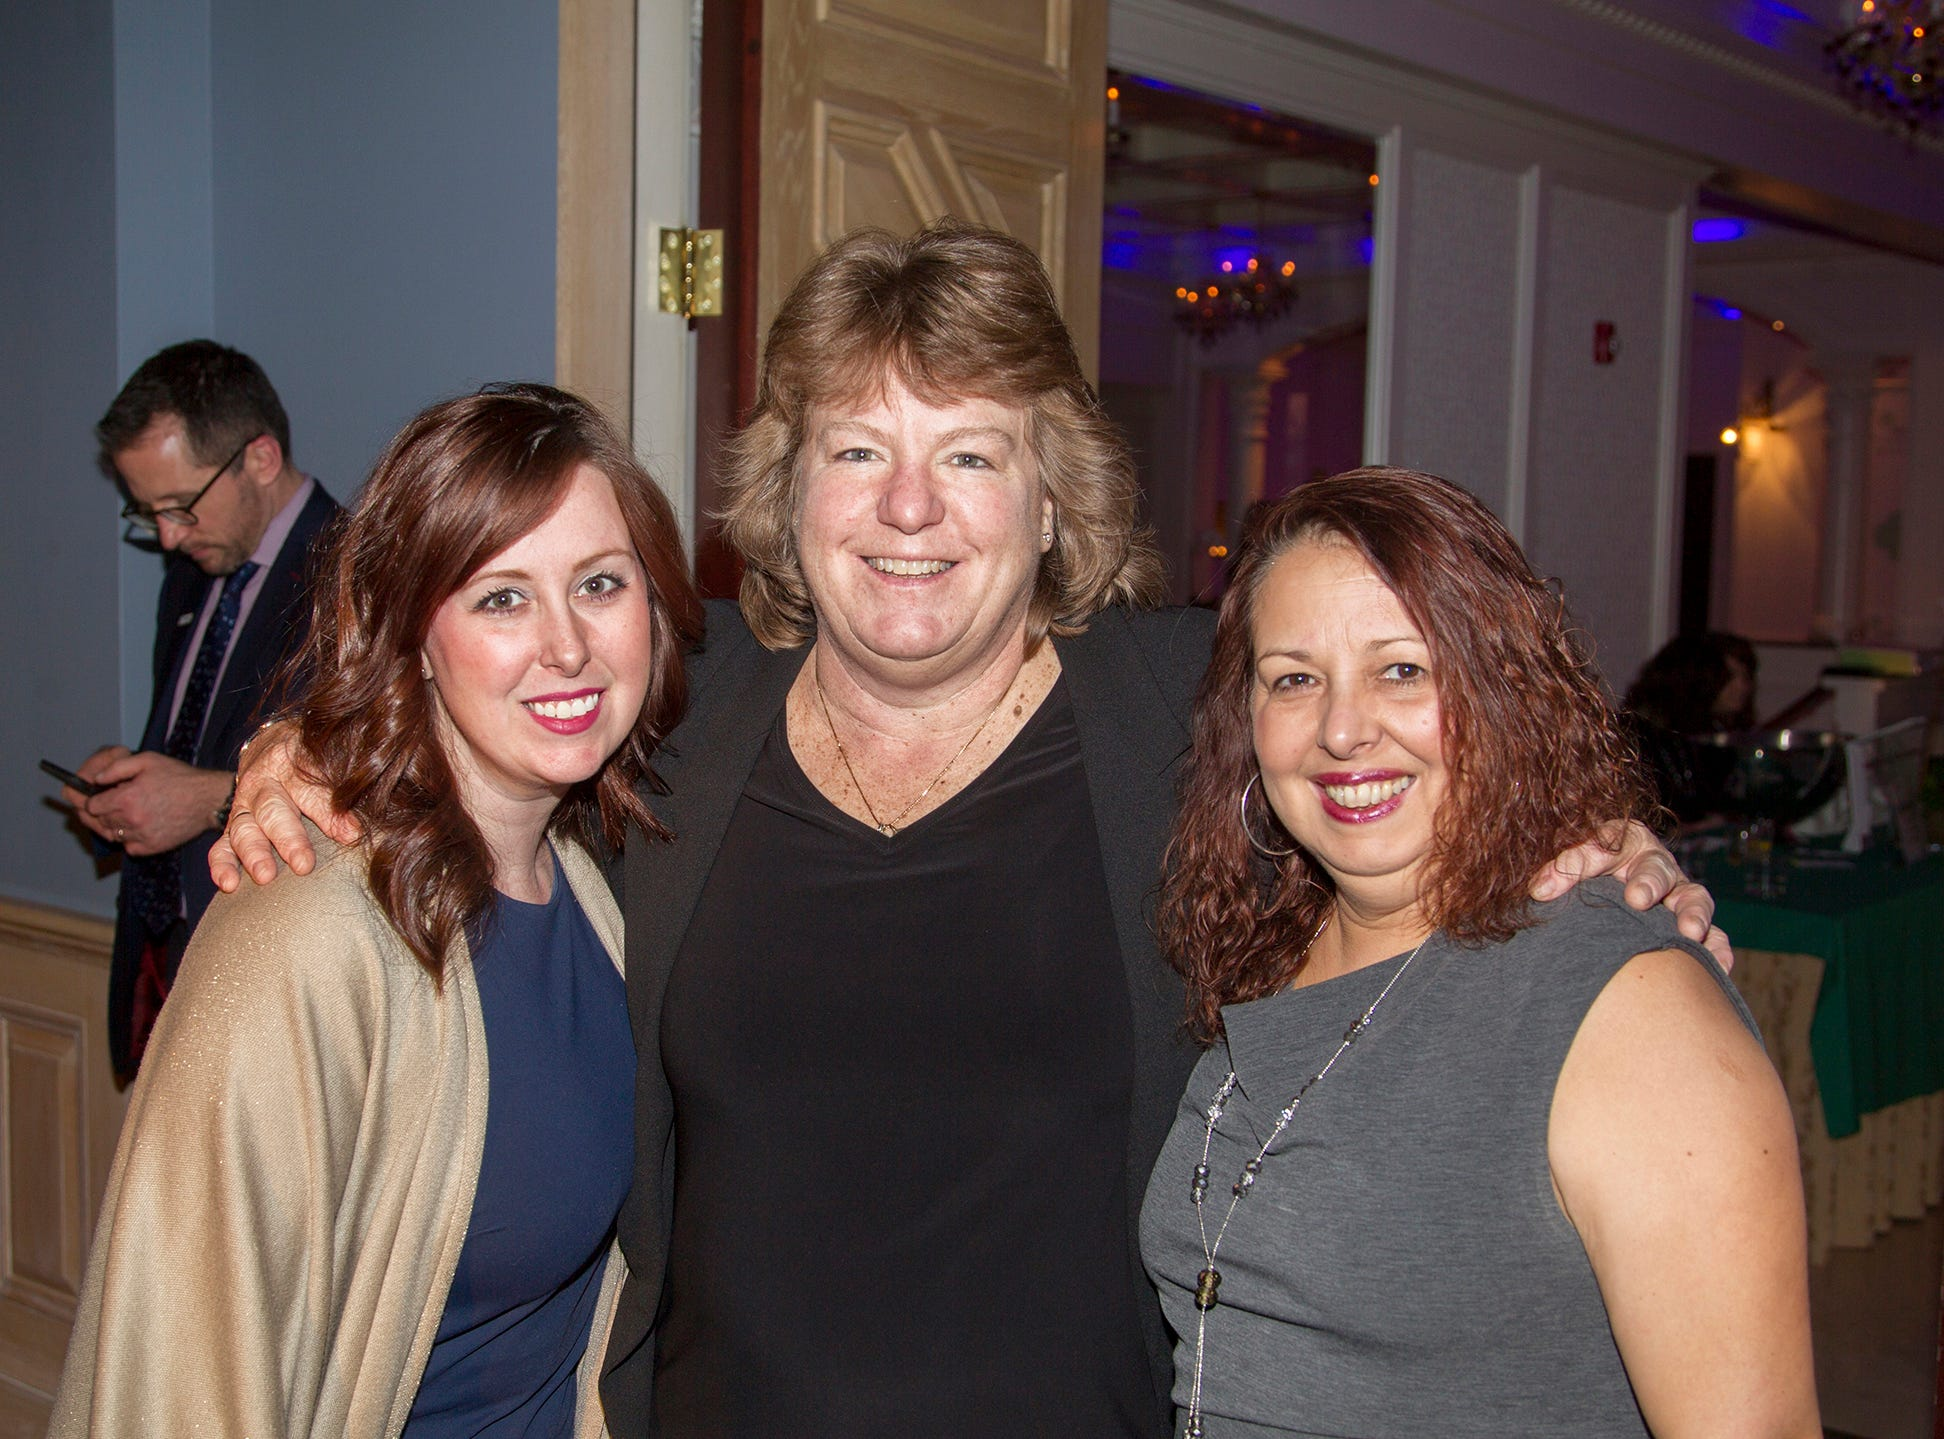 Elaine Andkecouich, Tricia hawley, Gigi Regolizxio. Girl Scouts of Northern New Jersey held its Women of Achievement 2019 at Westmount Country Club in Woodland Park. 04/04/2019